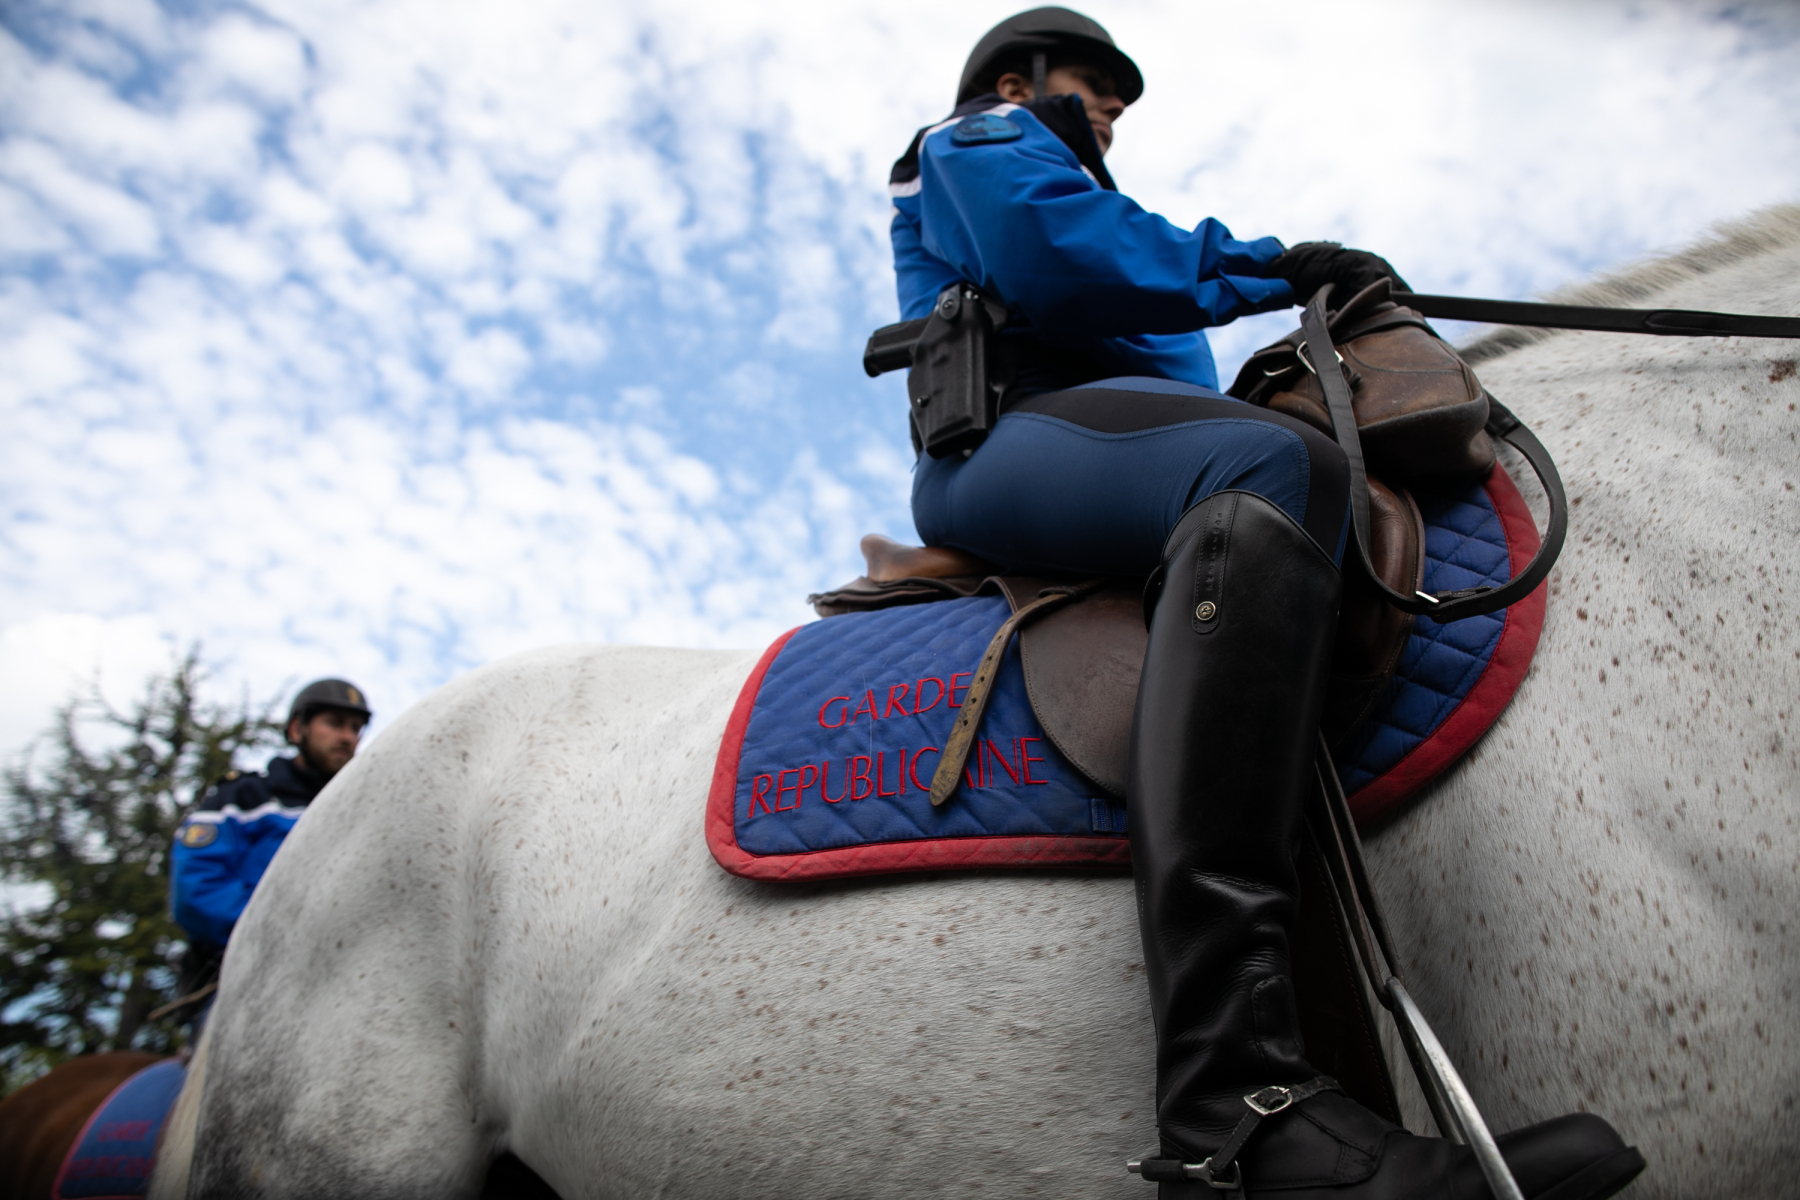 Garde républicaine mounted gendarme ride in the streets of Courseulles-sur-Mer, northwestern France, on April 17, 2020, following a strict lockdown across France to stop the spread of COVID-19, caused by the novel coronavirus.